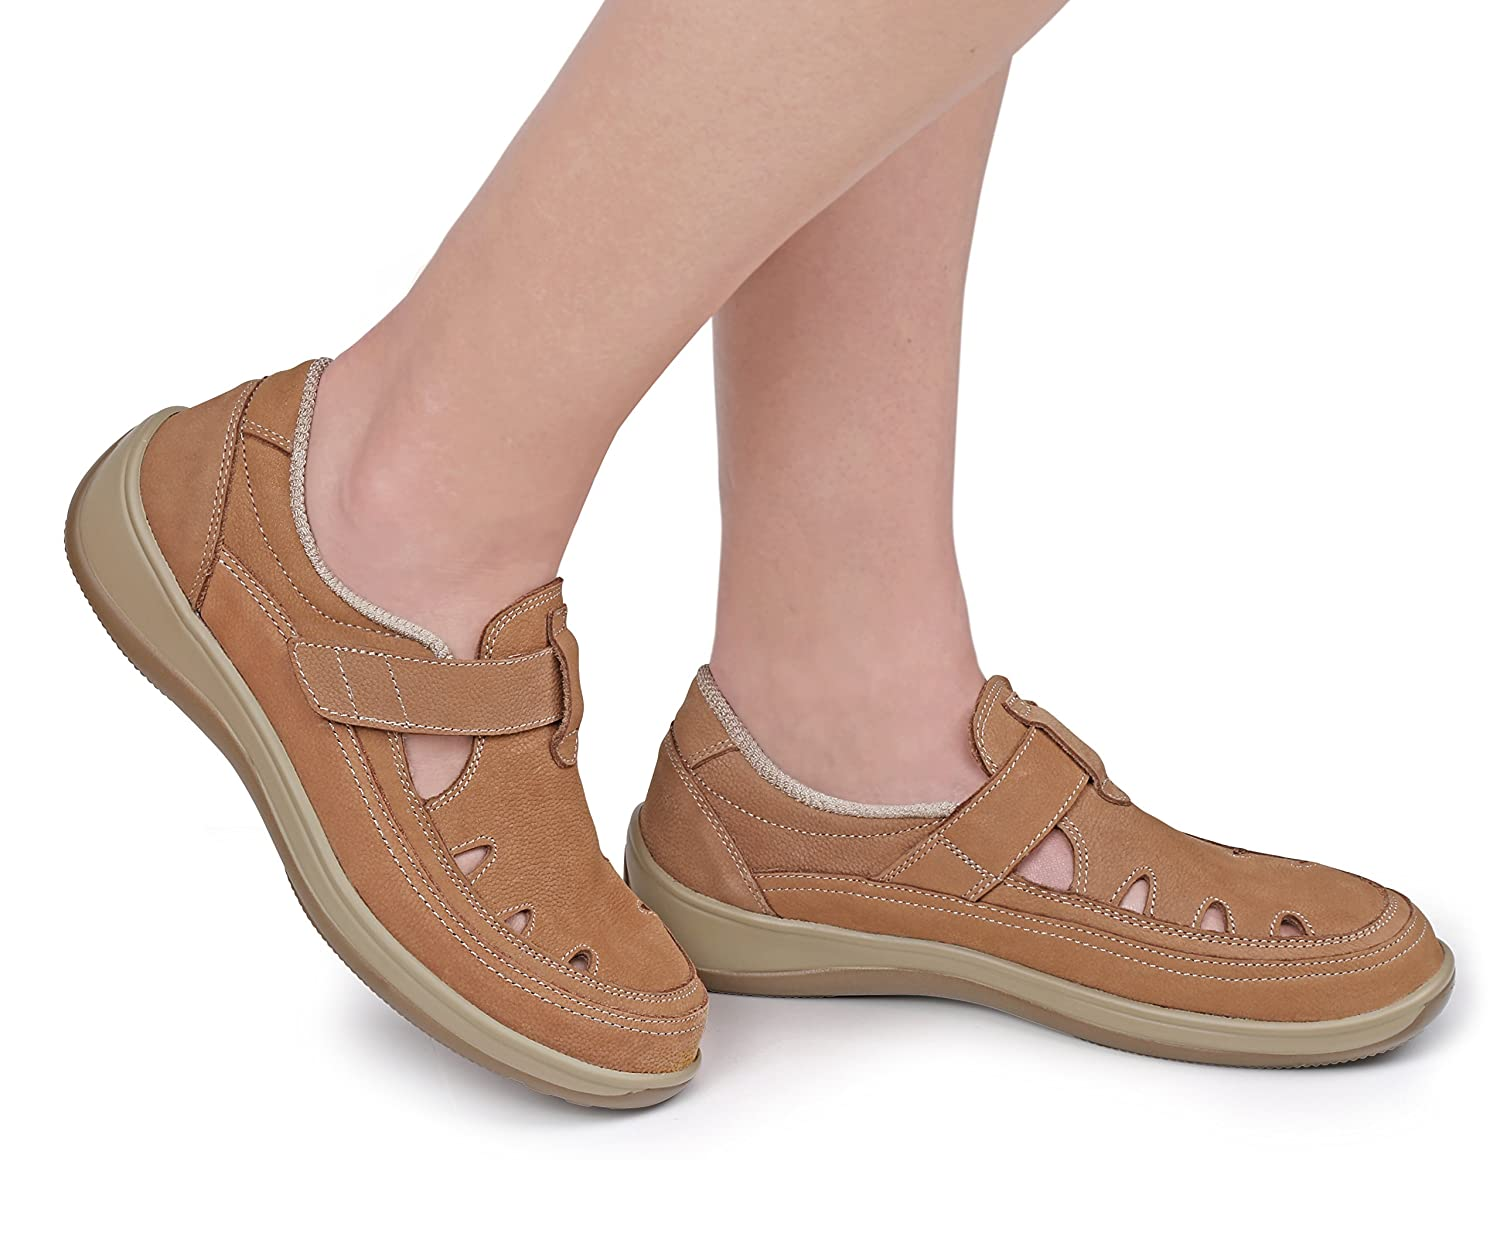 Orthofeet Proven Pain Relief Comfort Serene Womens Orthopedic Arthritis Diabetic T-Strap Shoes B016N9U5YM 11 XW US|Tan